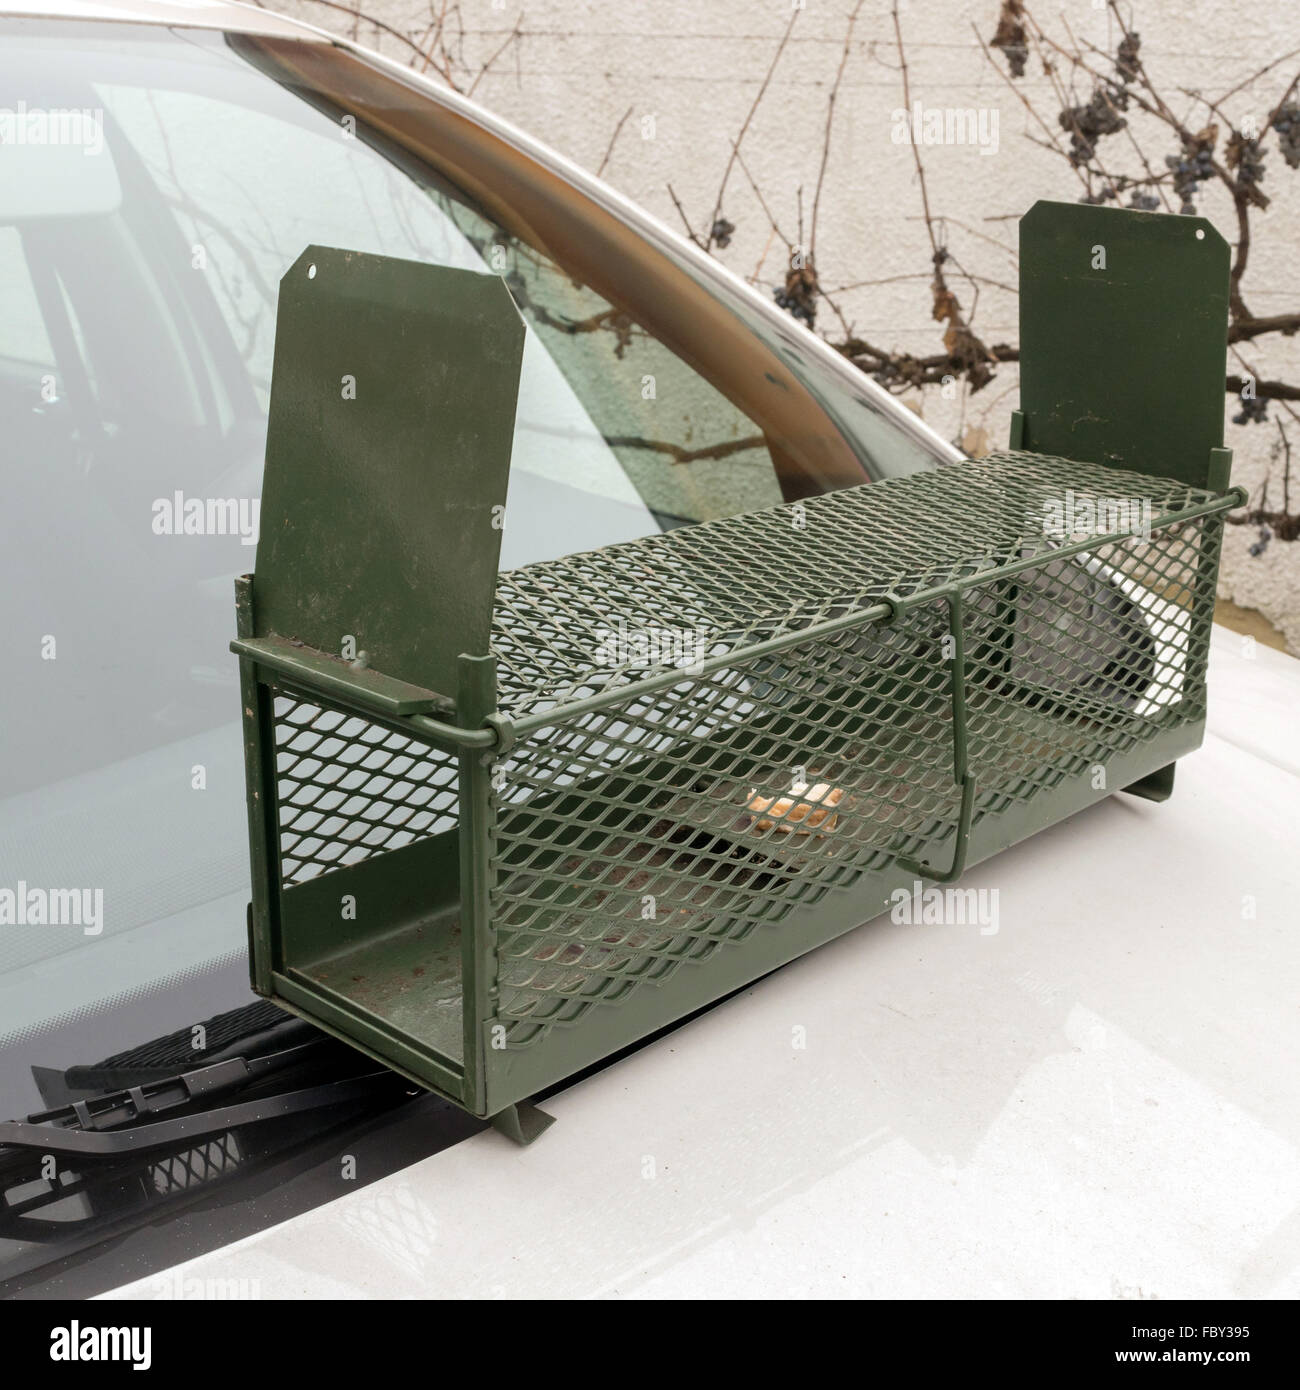 Human-wildlife conflict. Marten trap with bacon bait on car hood (it is appropriate for weasel, rat, mouse, or other - Stock Image